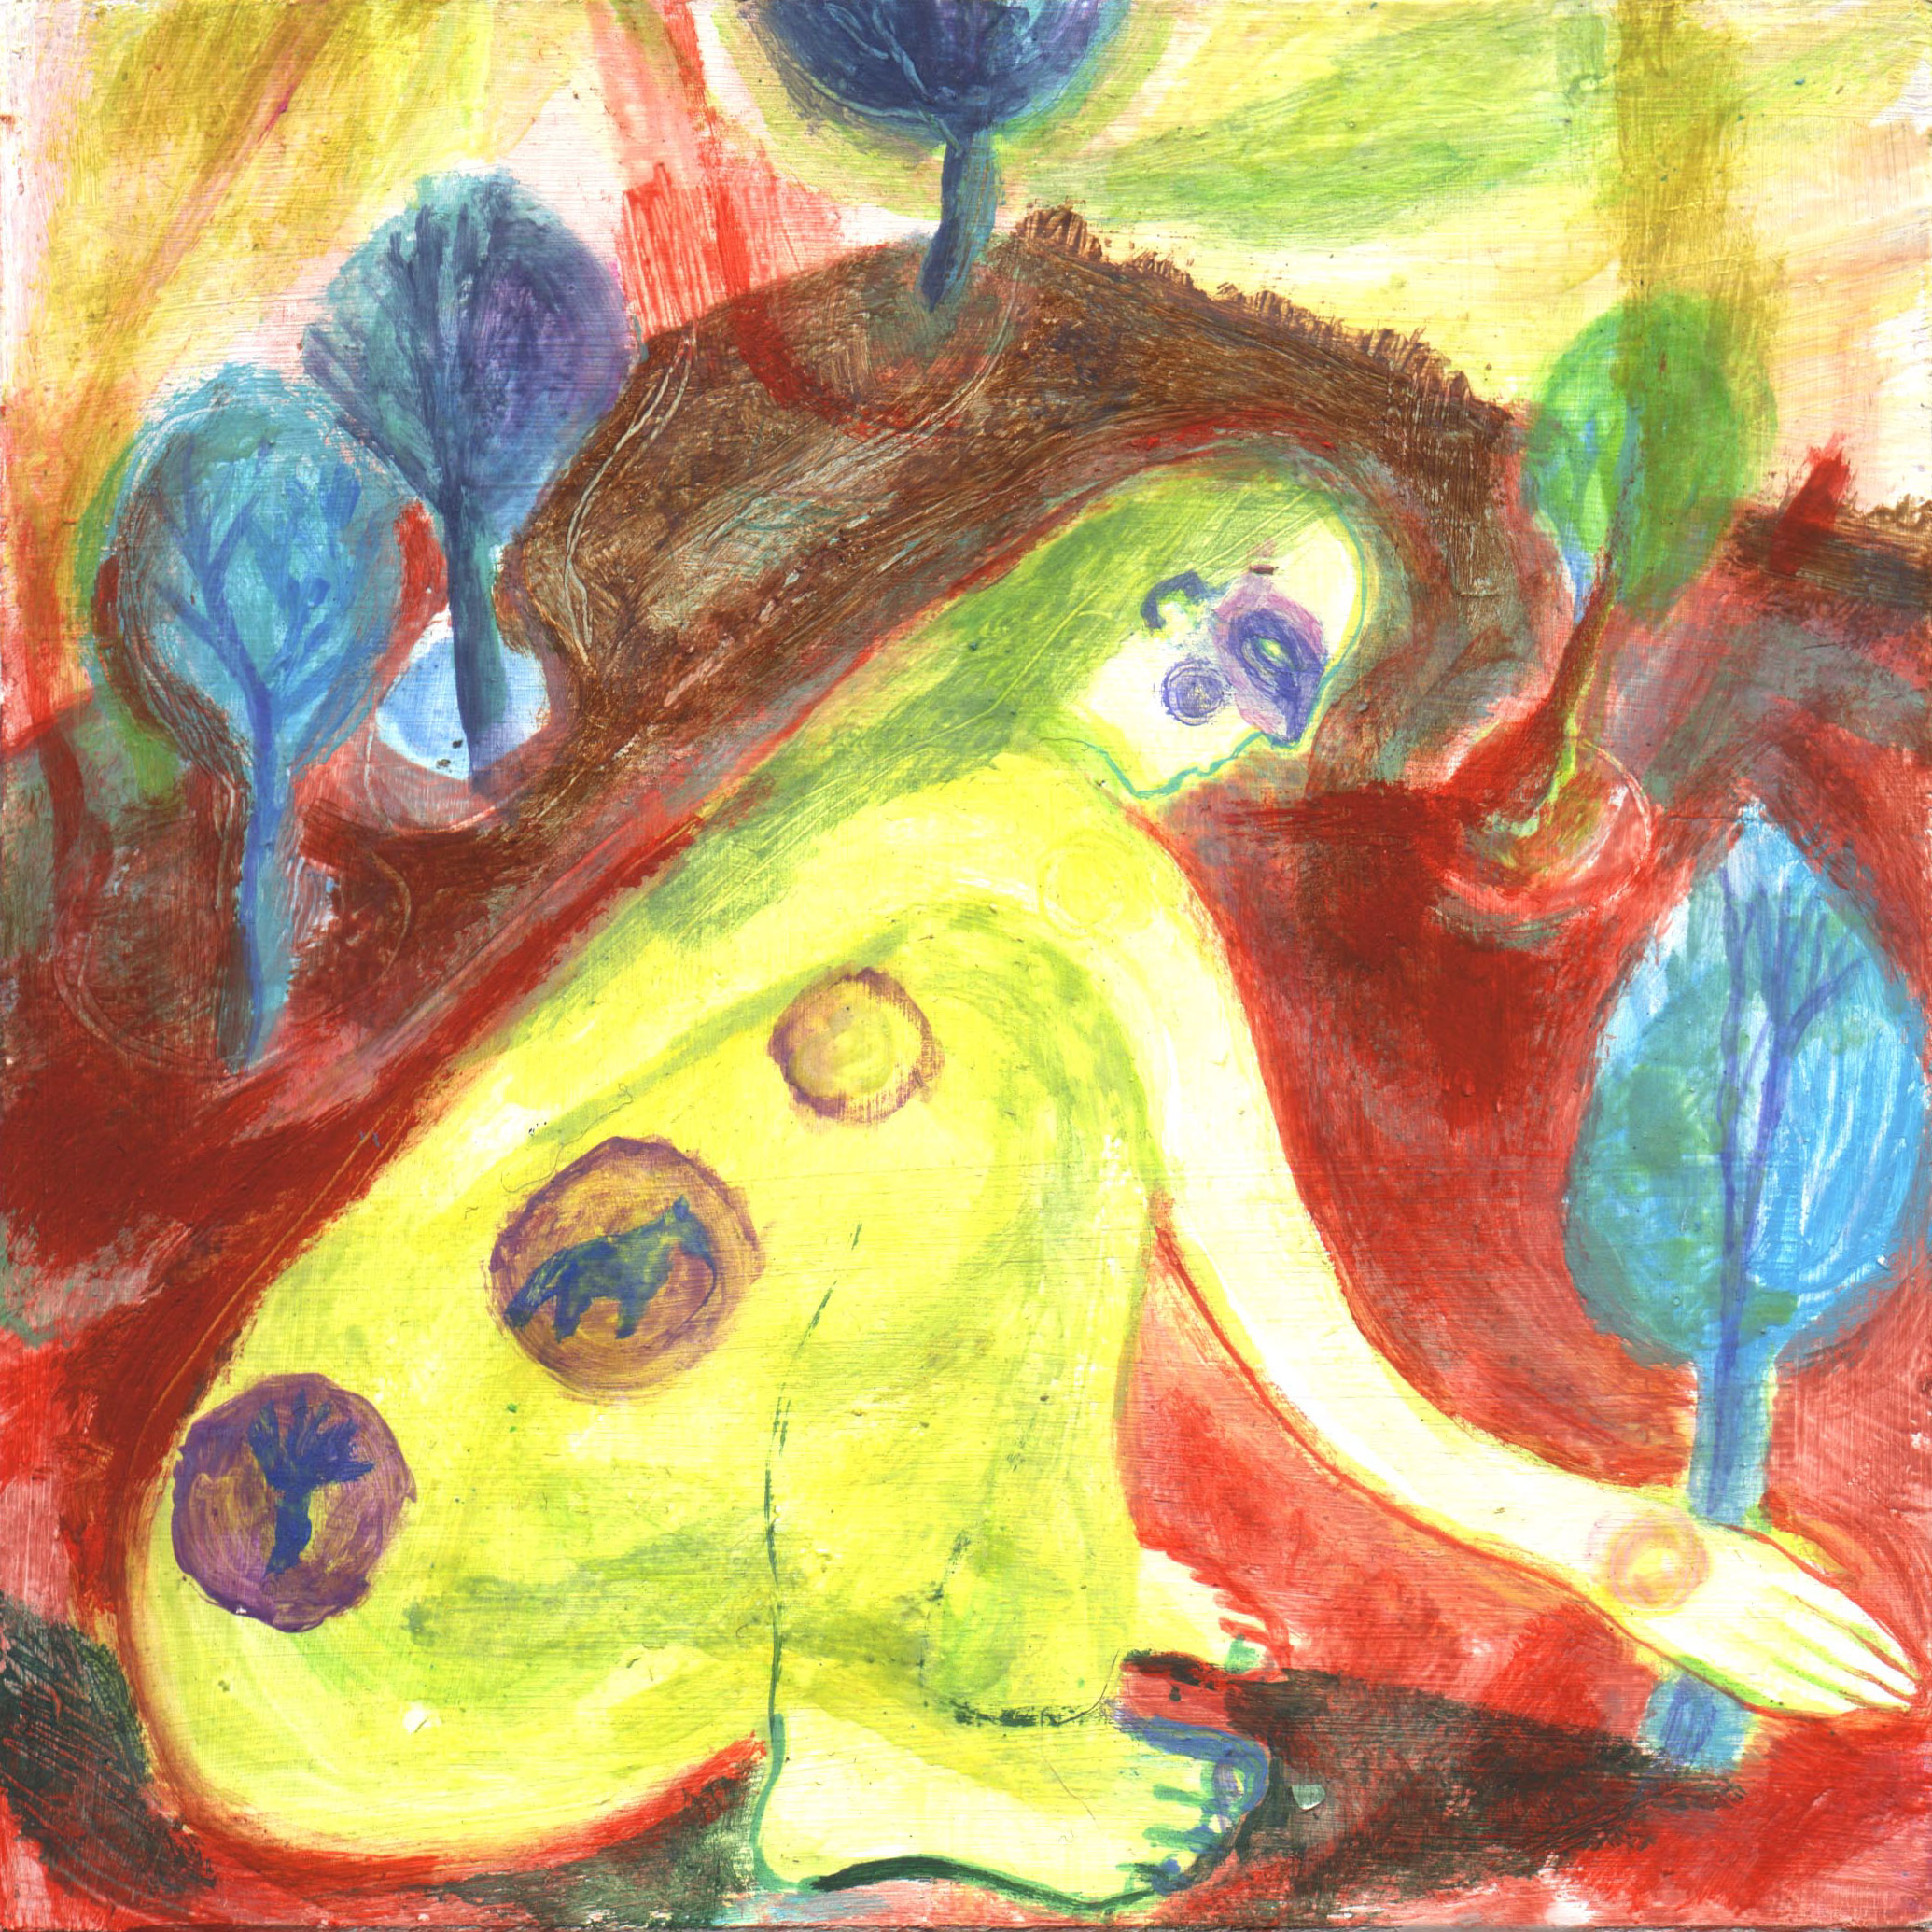 In Her Garden - 2001 - Acrylic on board